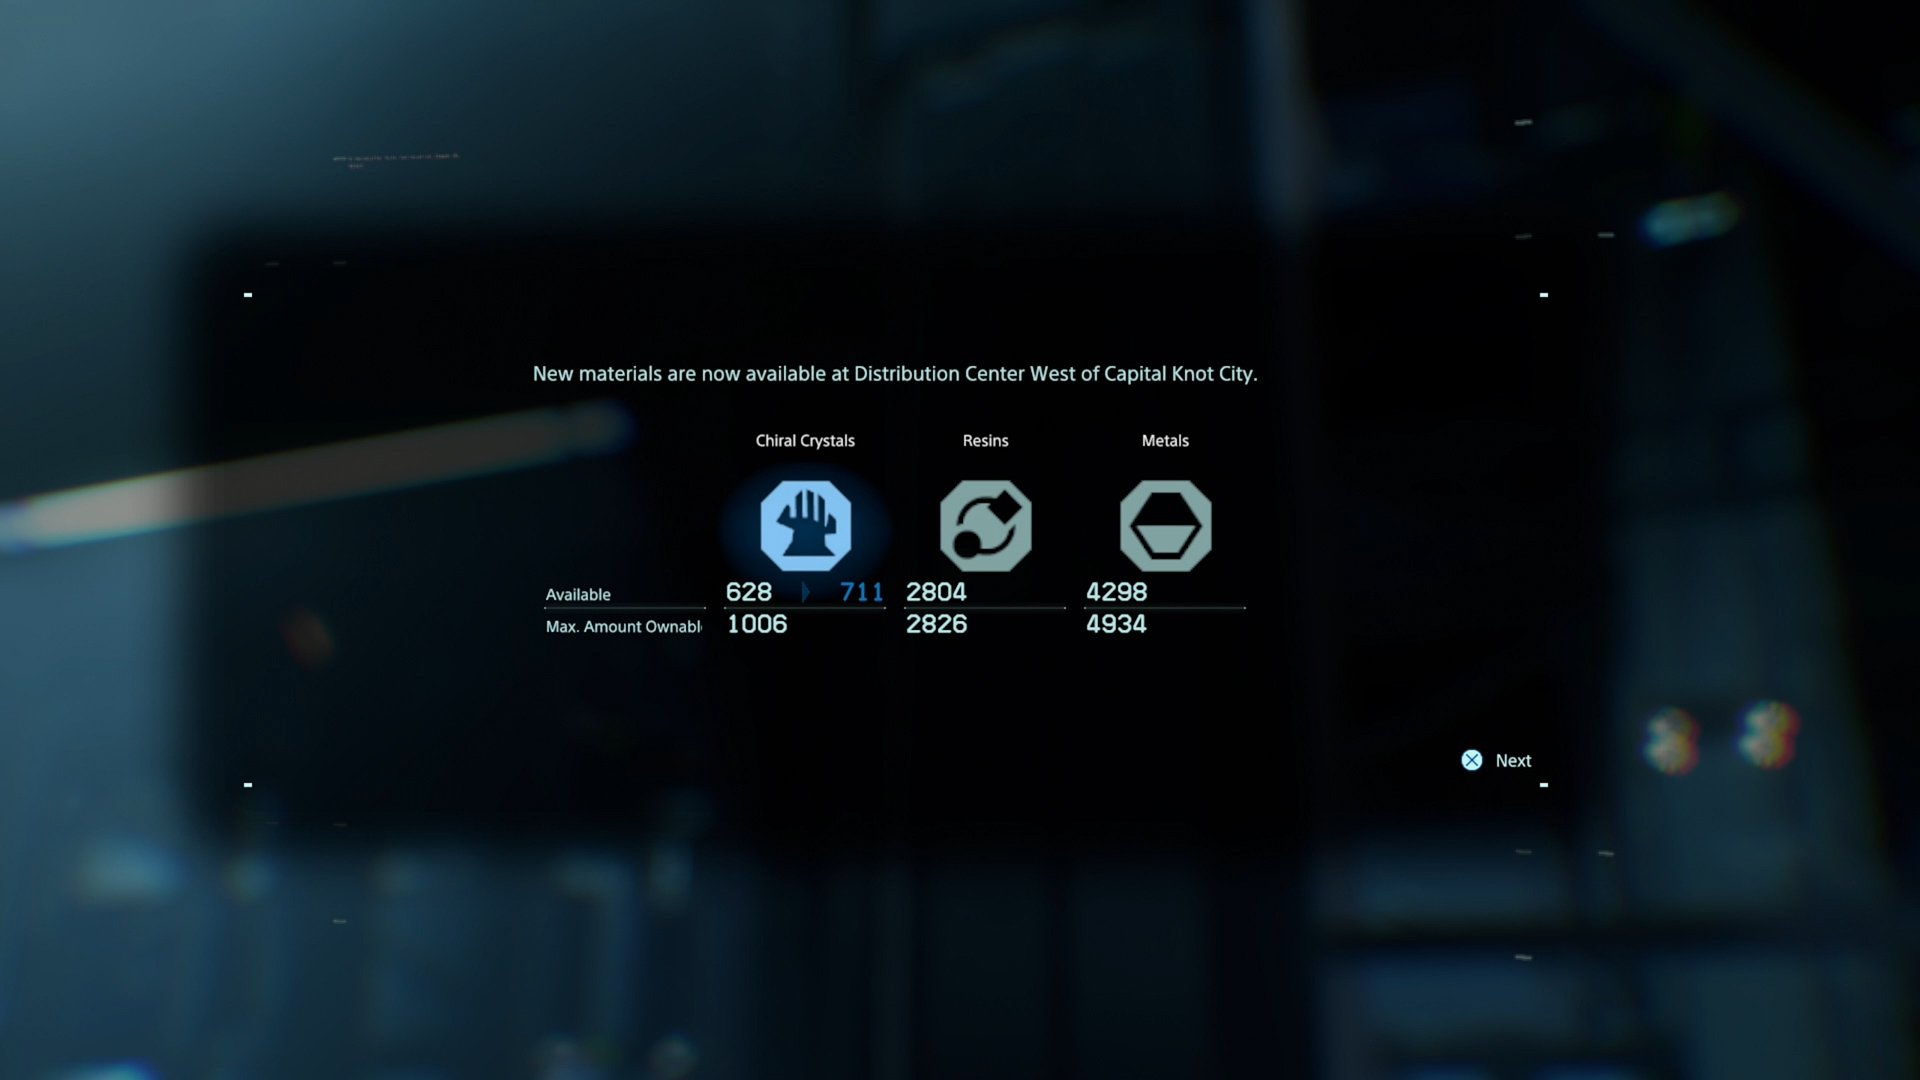 How to get more crafting mats - Death Stranding